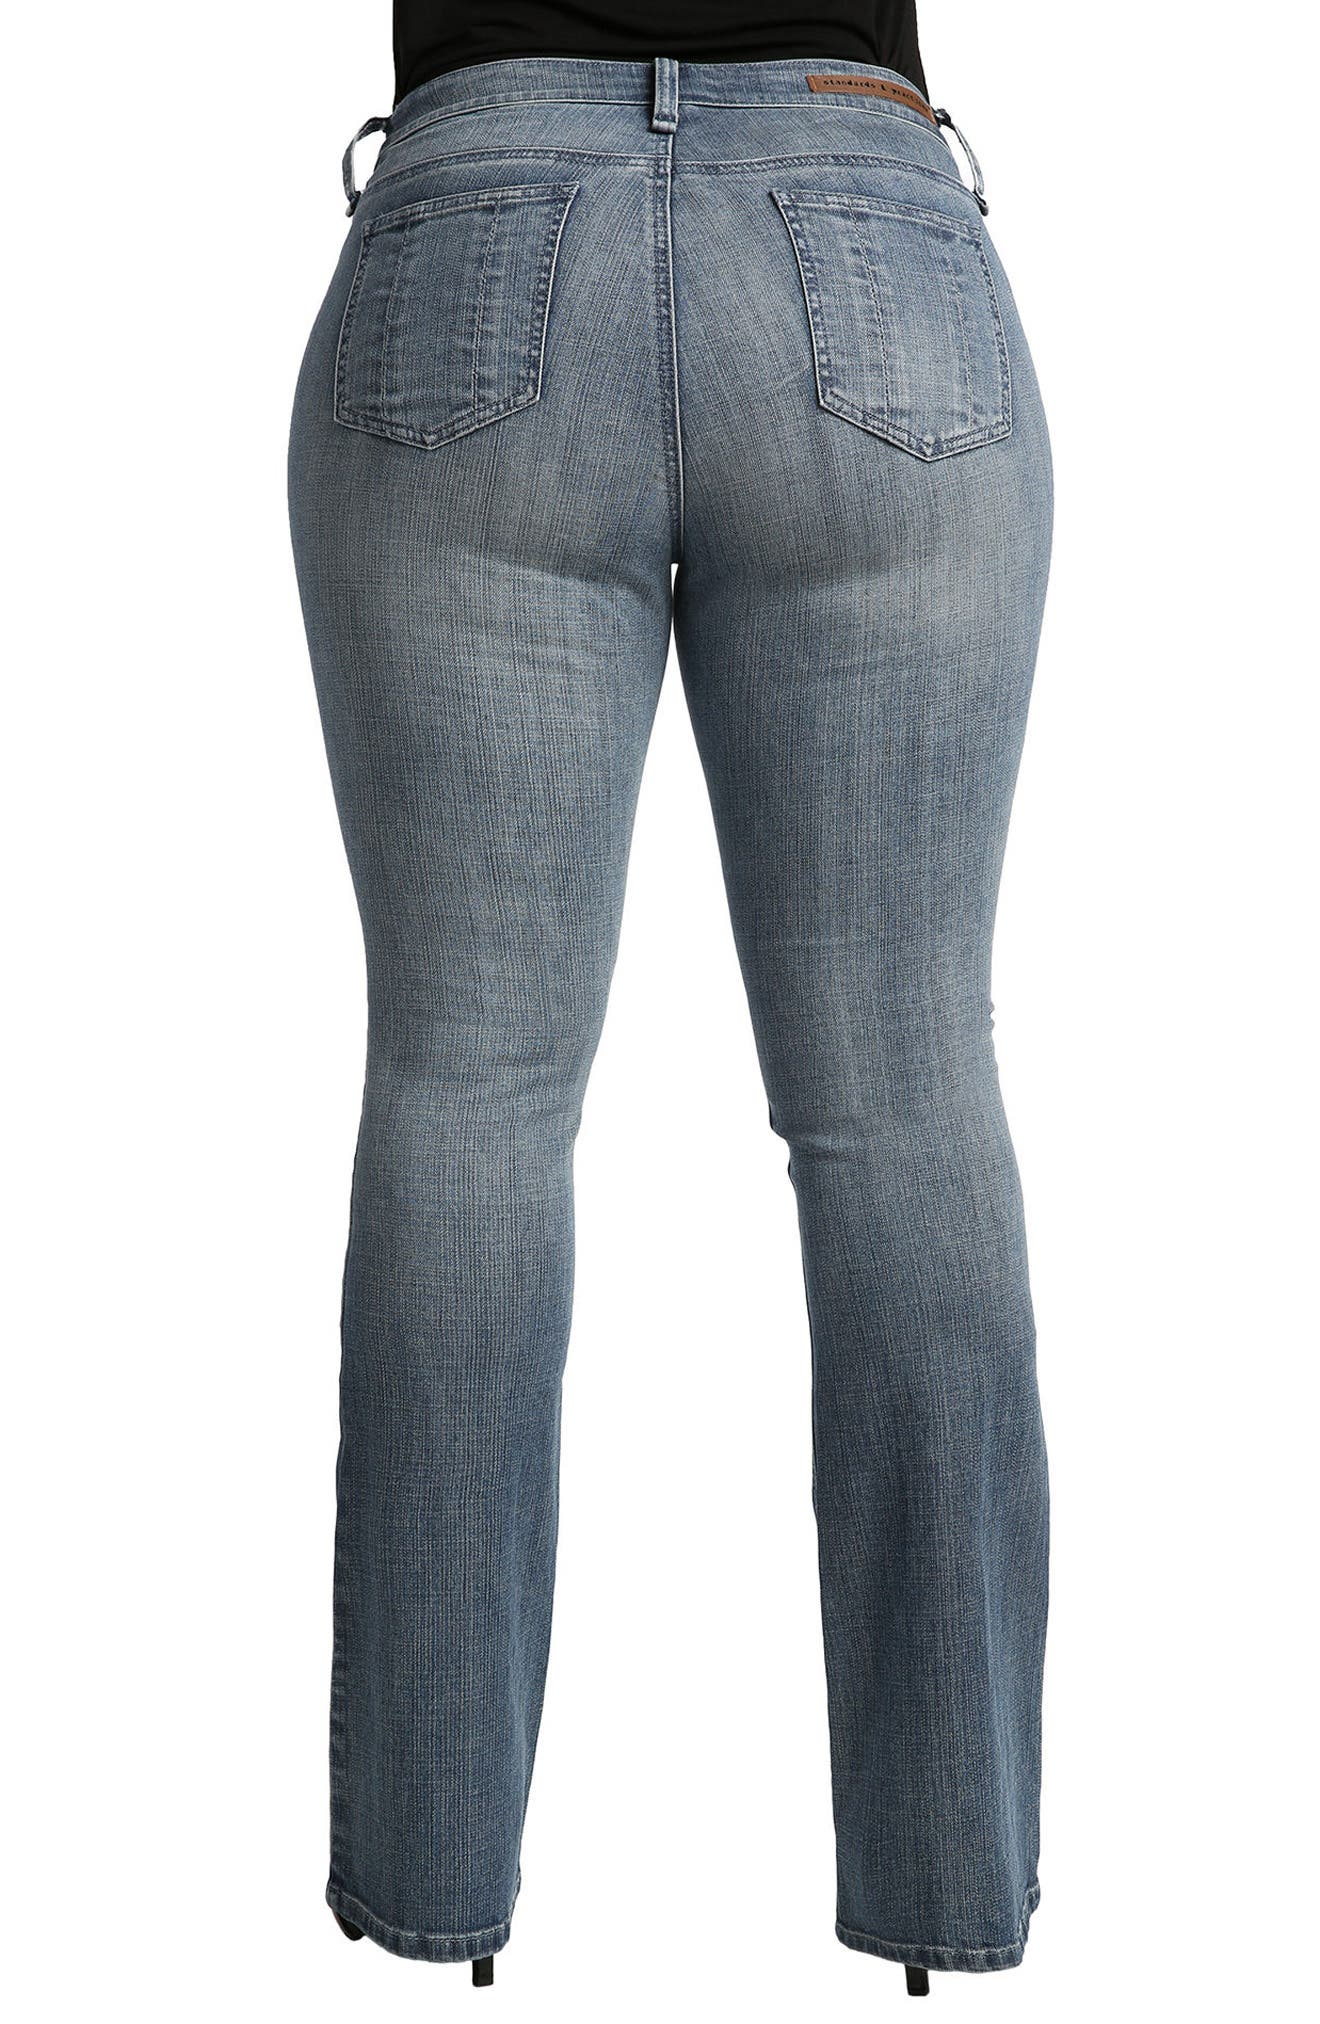 STANDARDS & PRACTICES, Clarice Uptown Mid Rise Bootcut Jeans, Alternate thumbnail 2, color, 1054BOYTOY